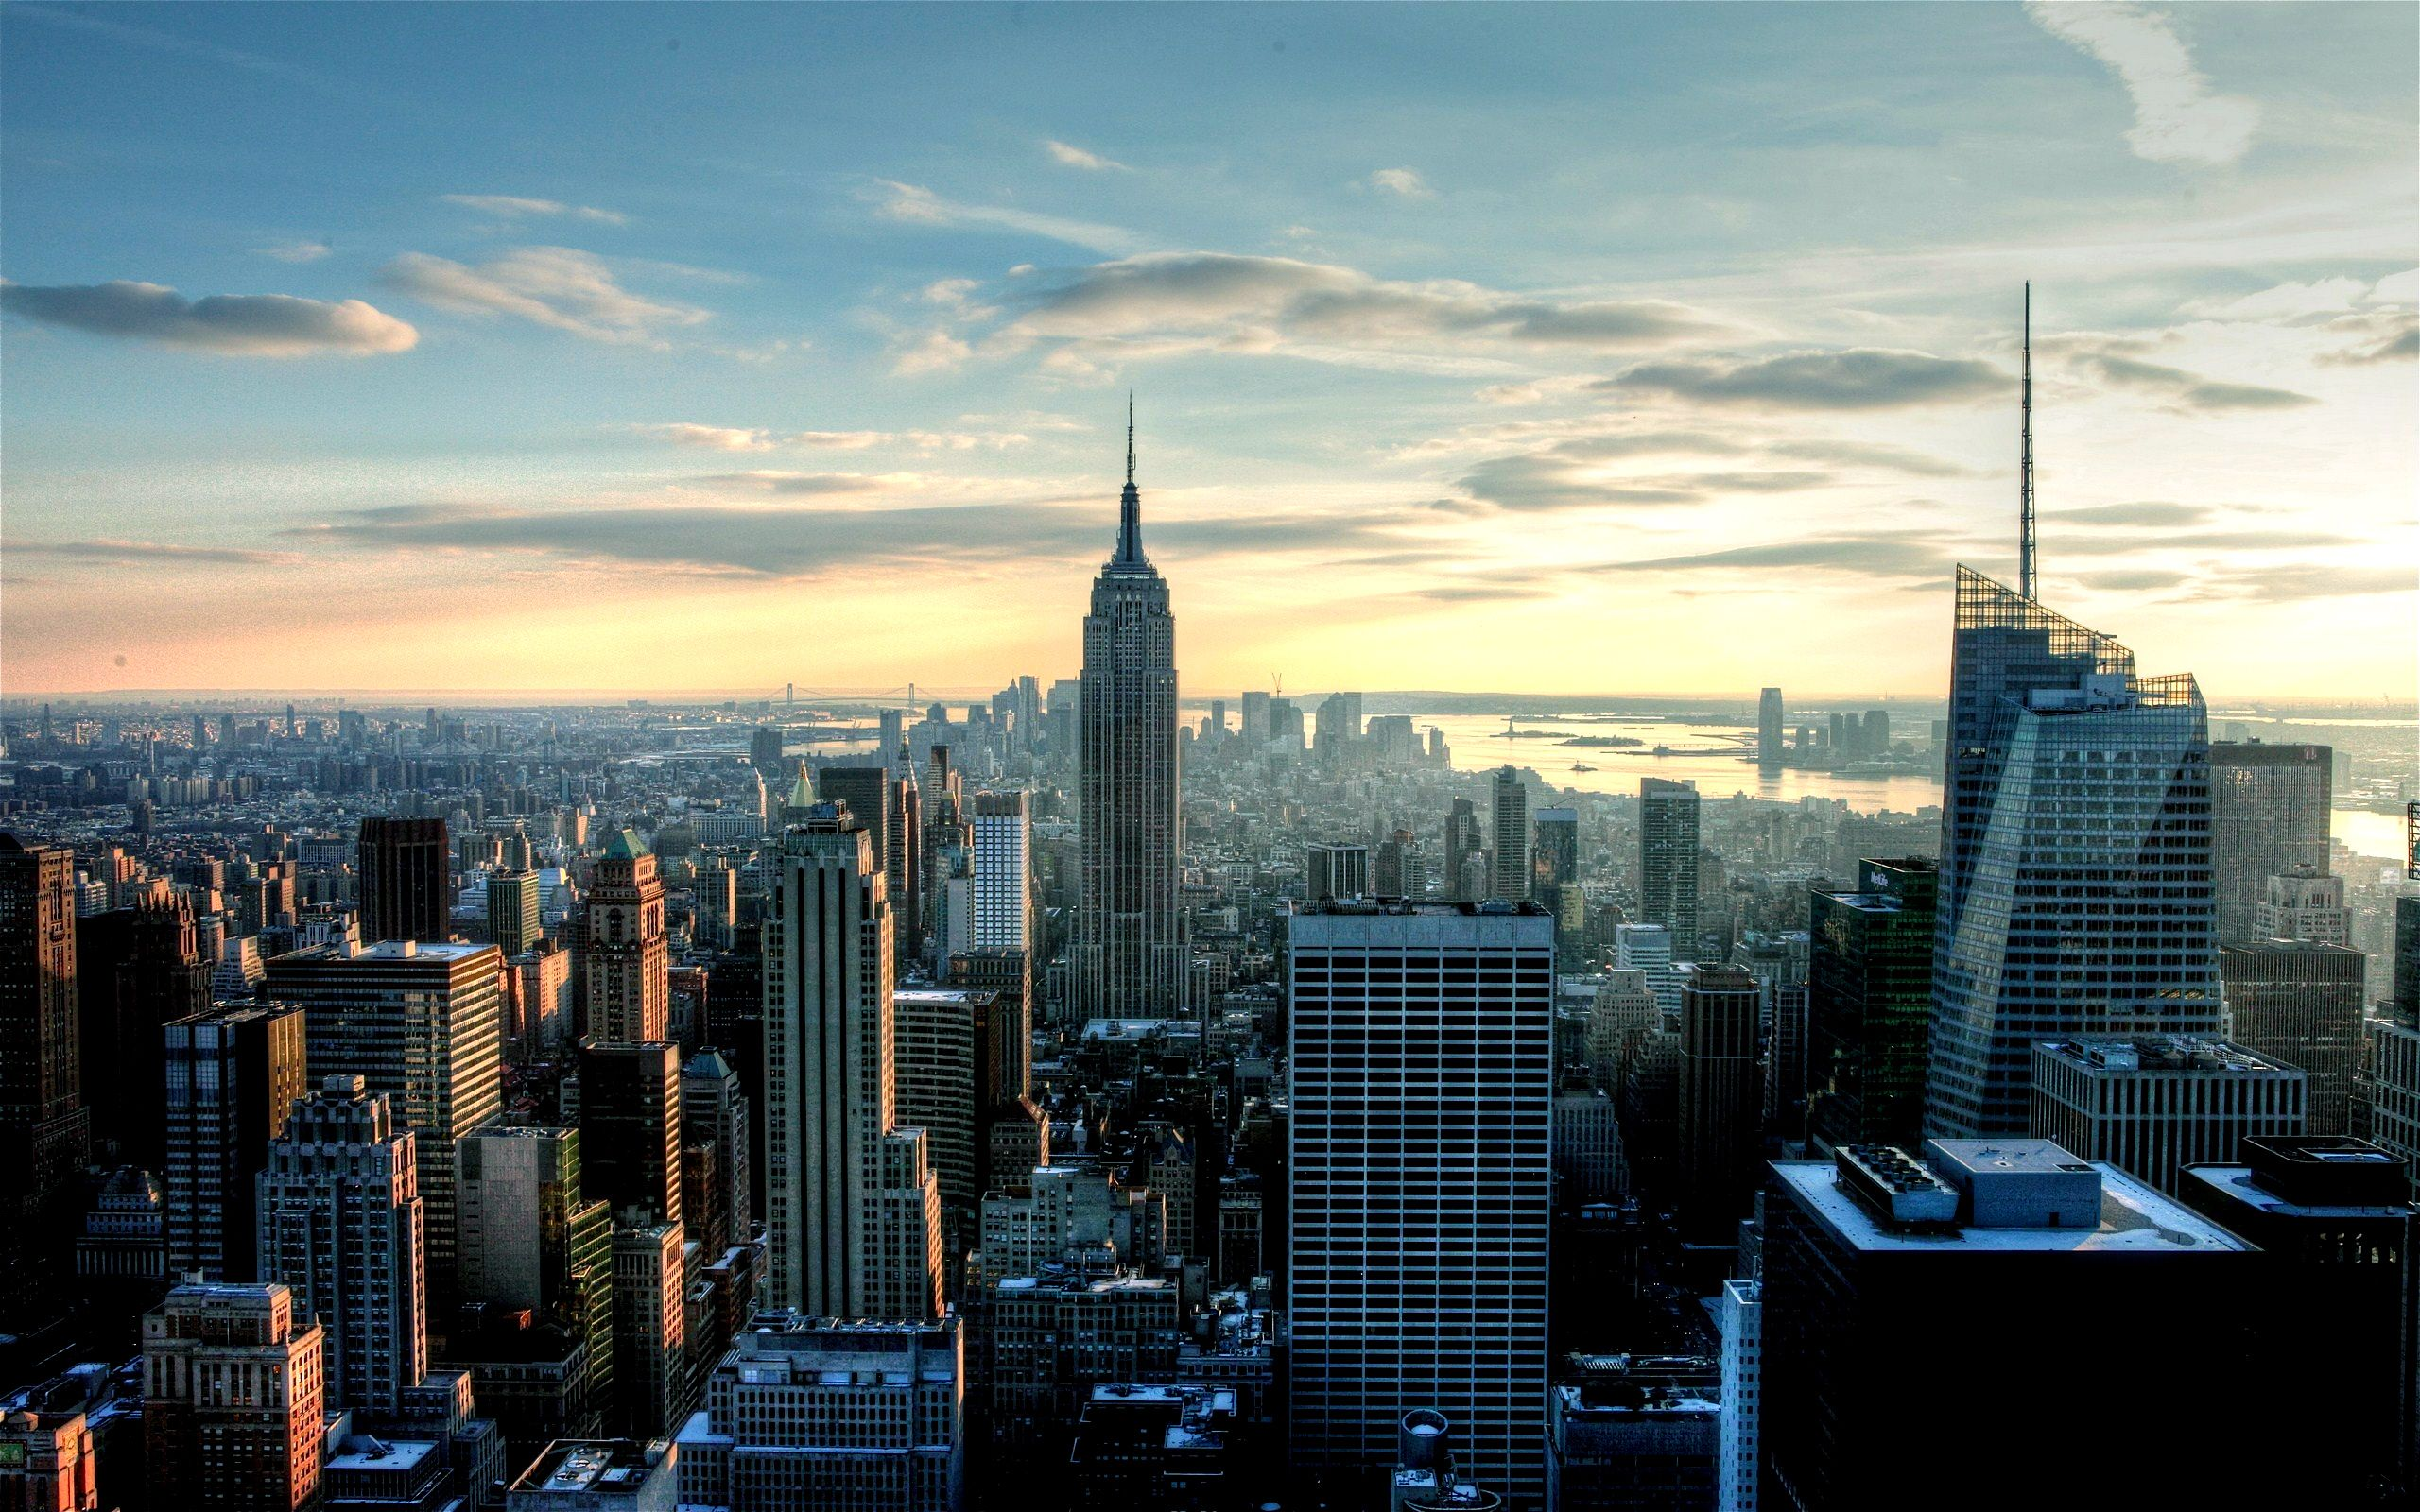 Amazing City Wallpaper Widescreen For Windows 7 Wallpaper With